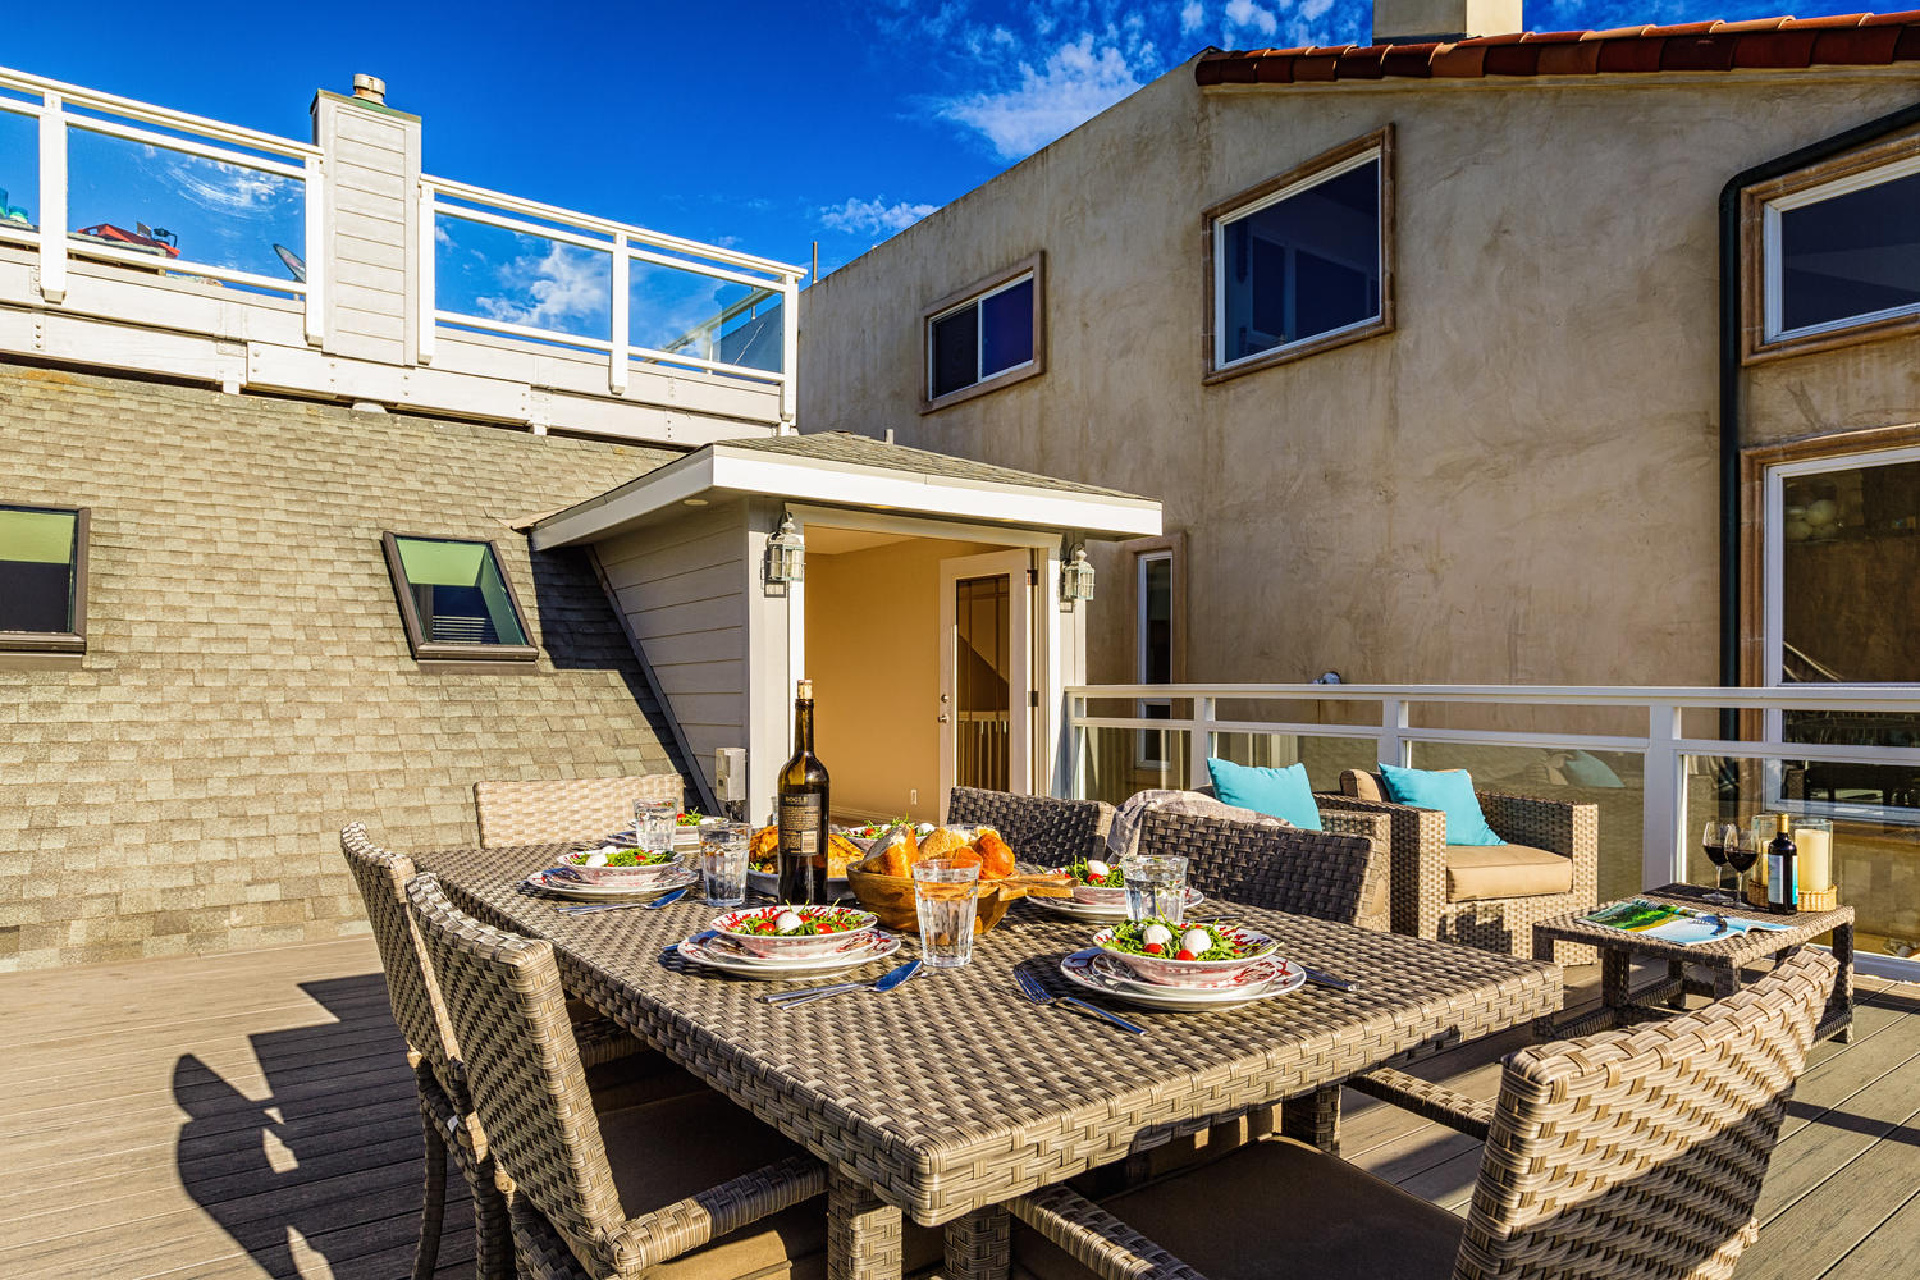 https://addressrealestate.com/media/images/blogs/38/2/b_18-1408-ocean-dr-oxnard-ca-93035-mls-size-012-7-balcony-1500x1000-72dpi.jpg